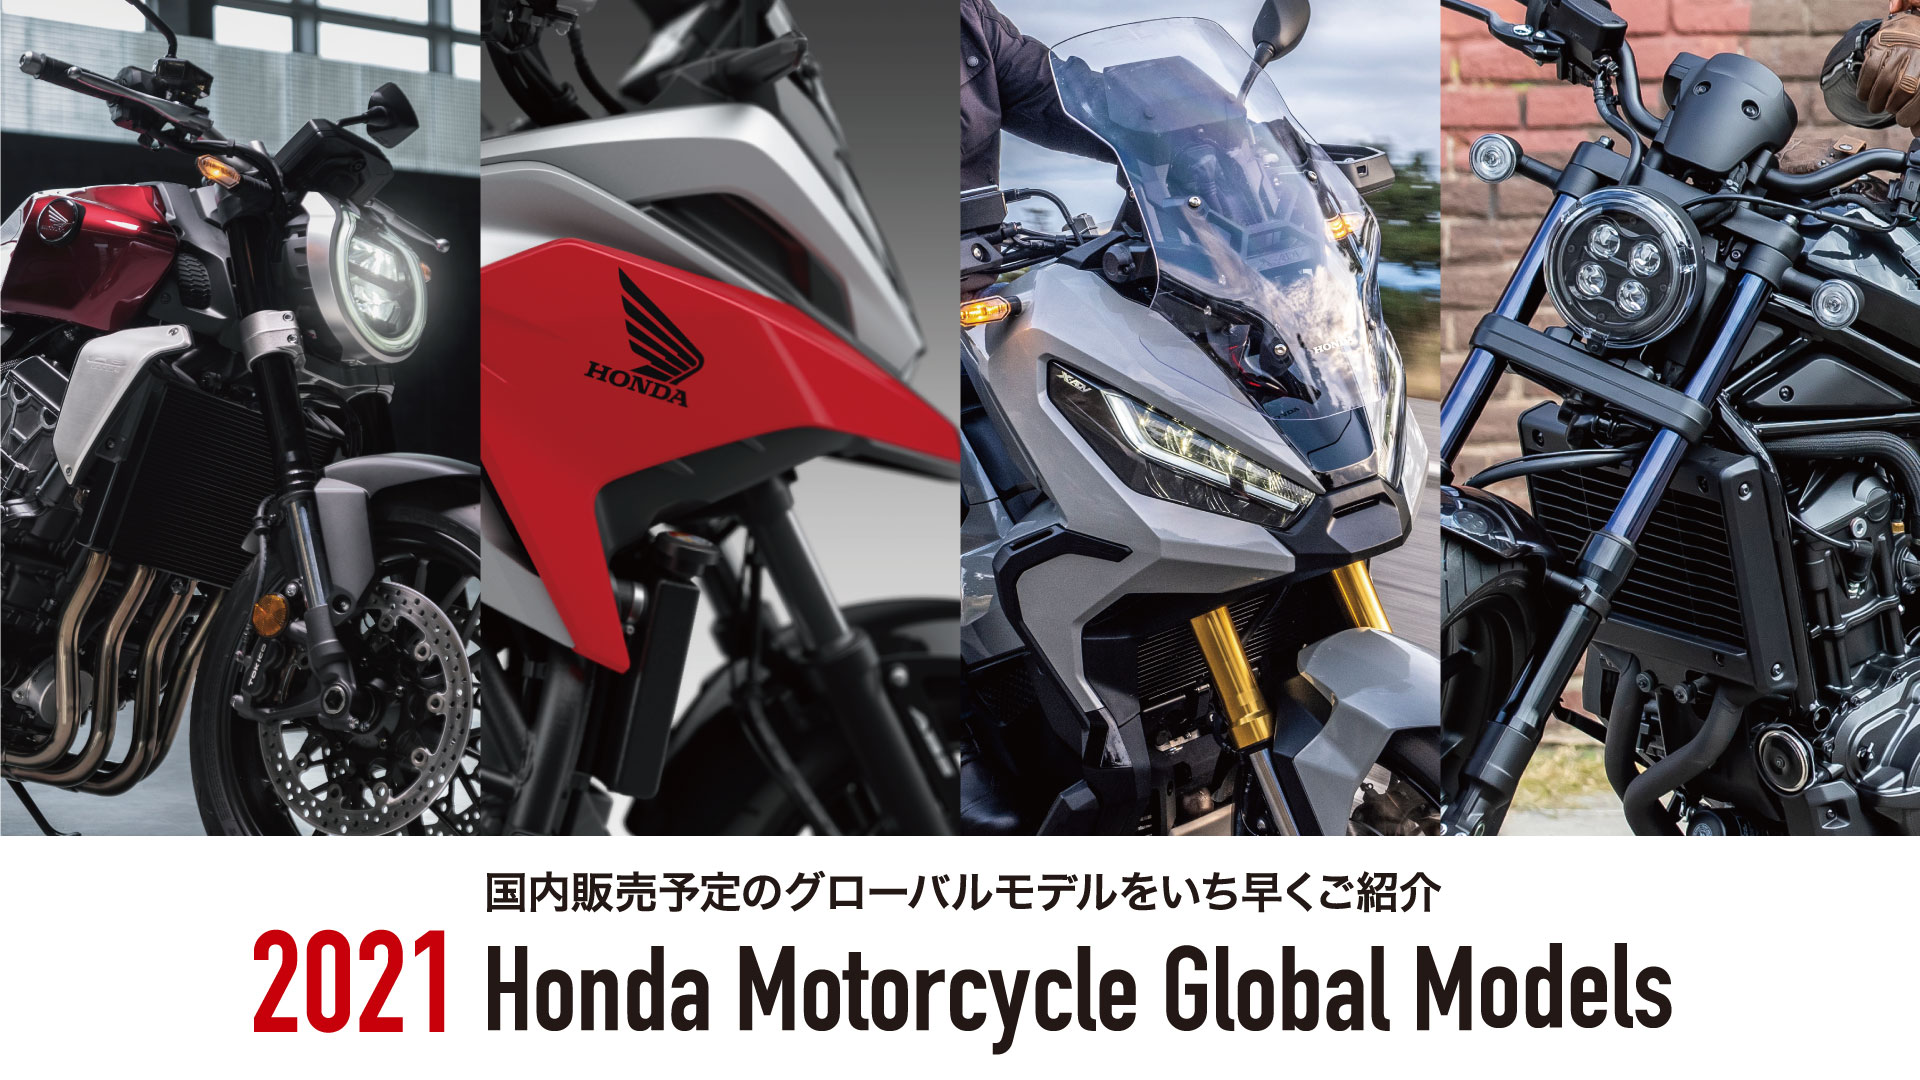 2021 Honda Motorcycle Global Models